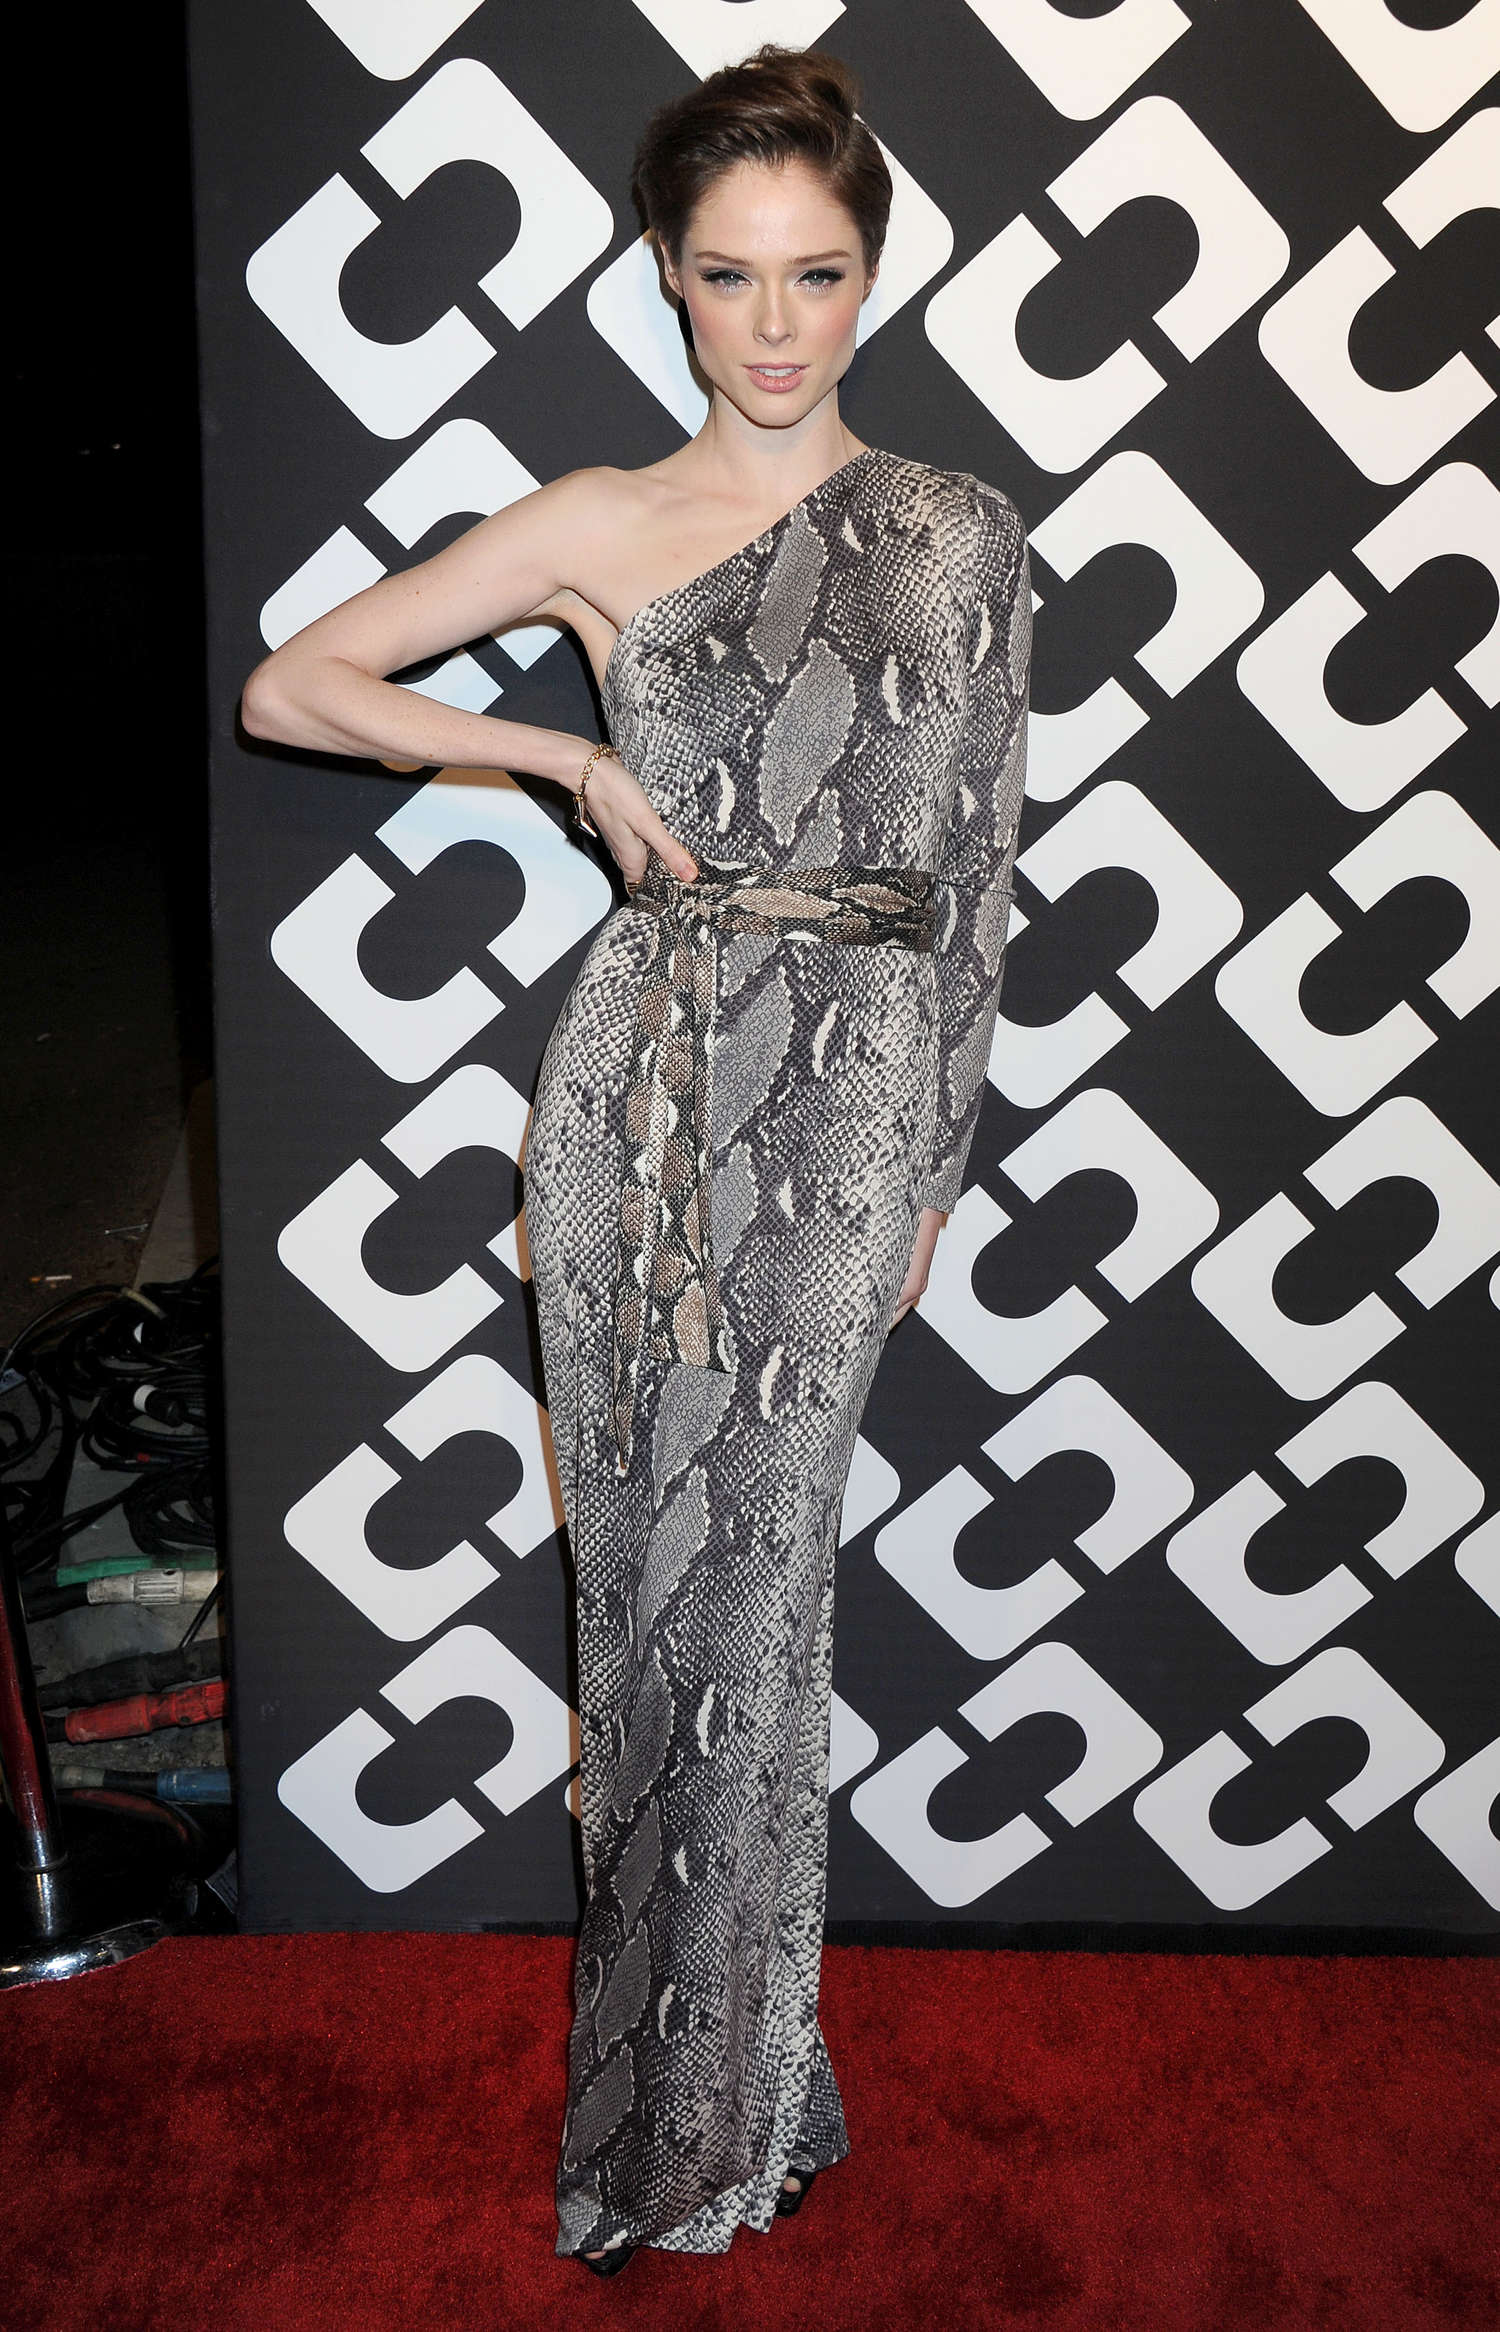 Coco Rocha Diane Von Furstenbergs Journey Of A Dress Exhibition in Los Angeles